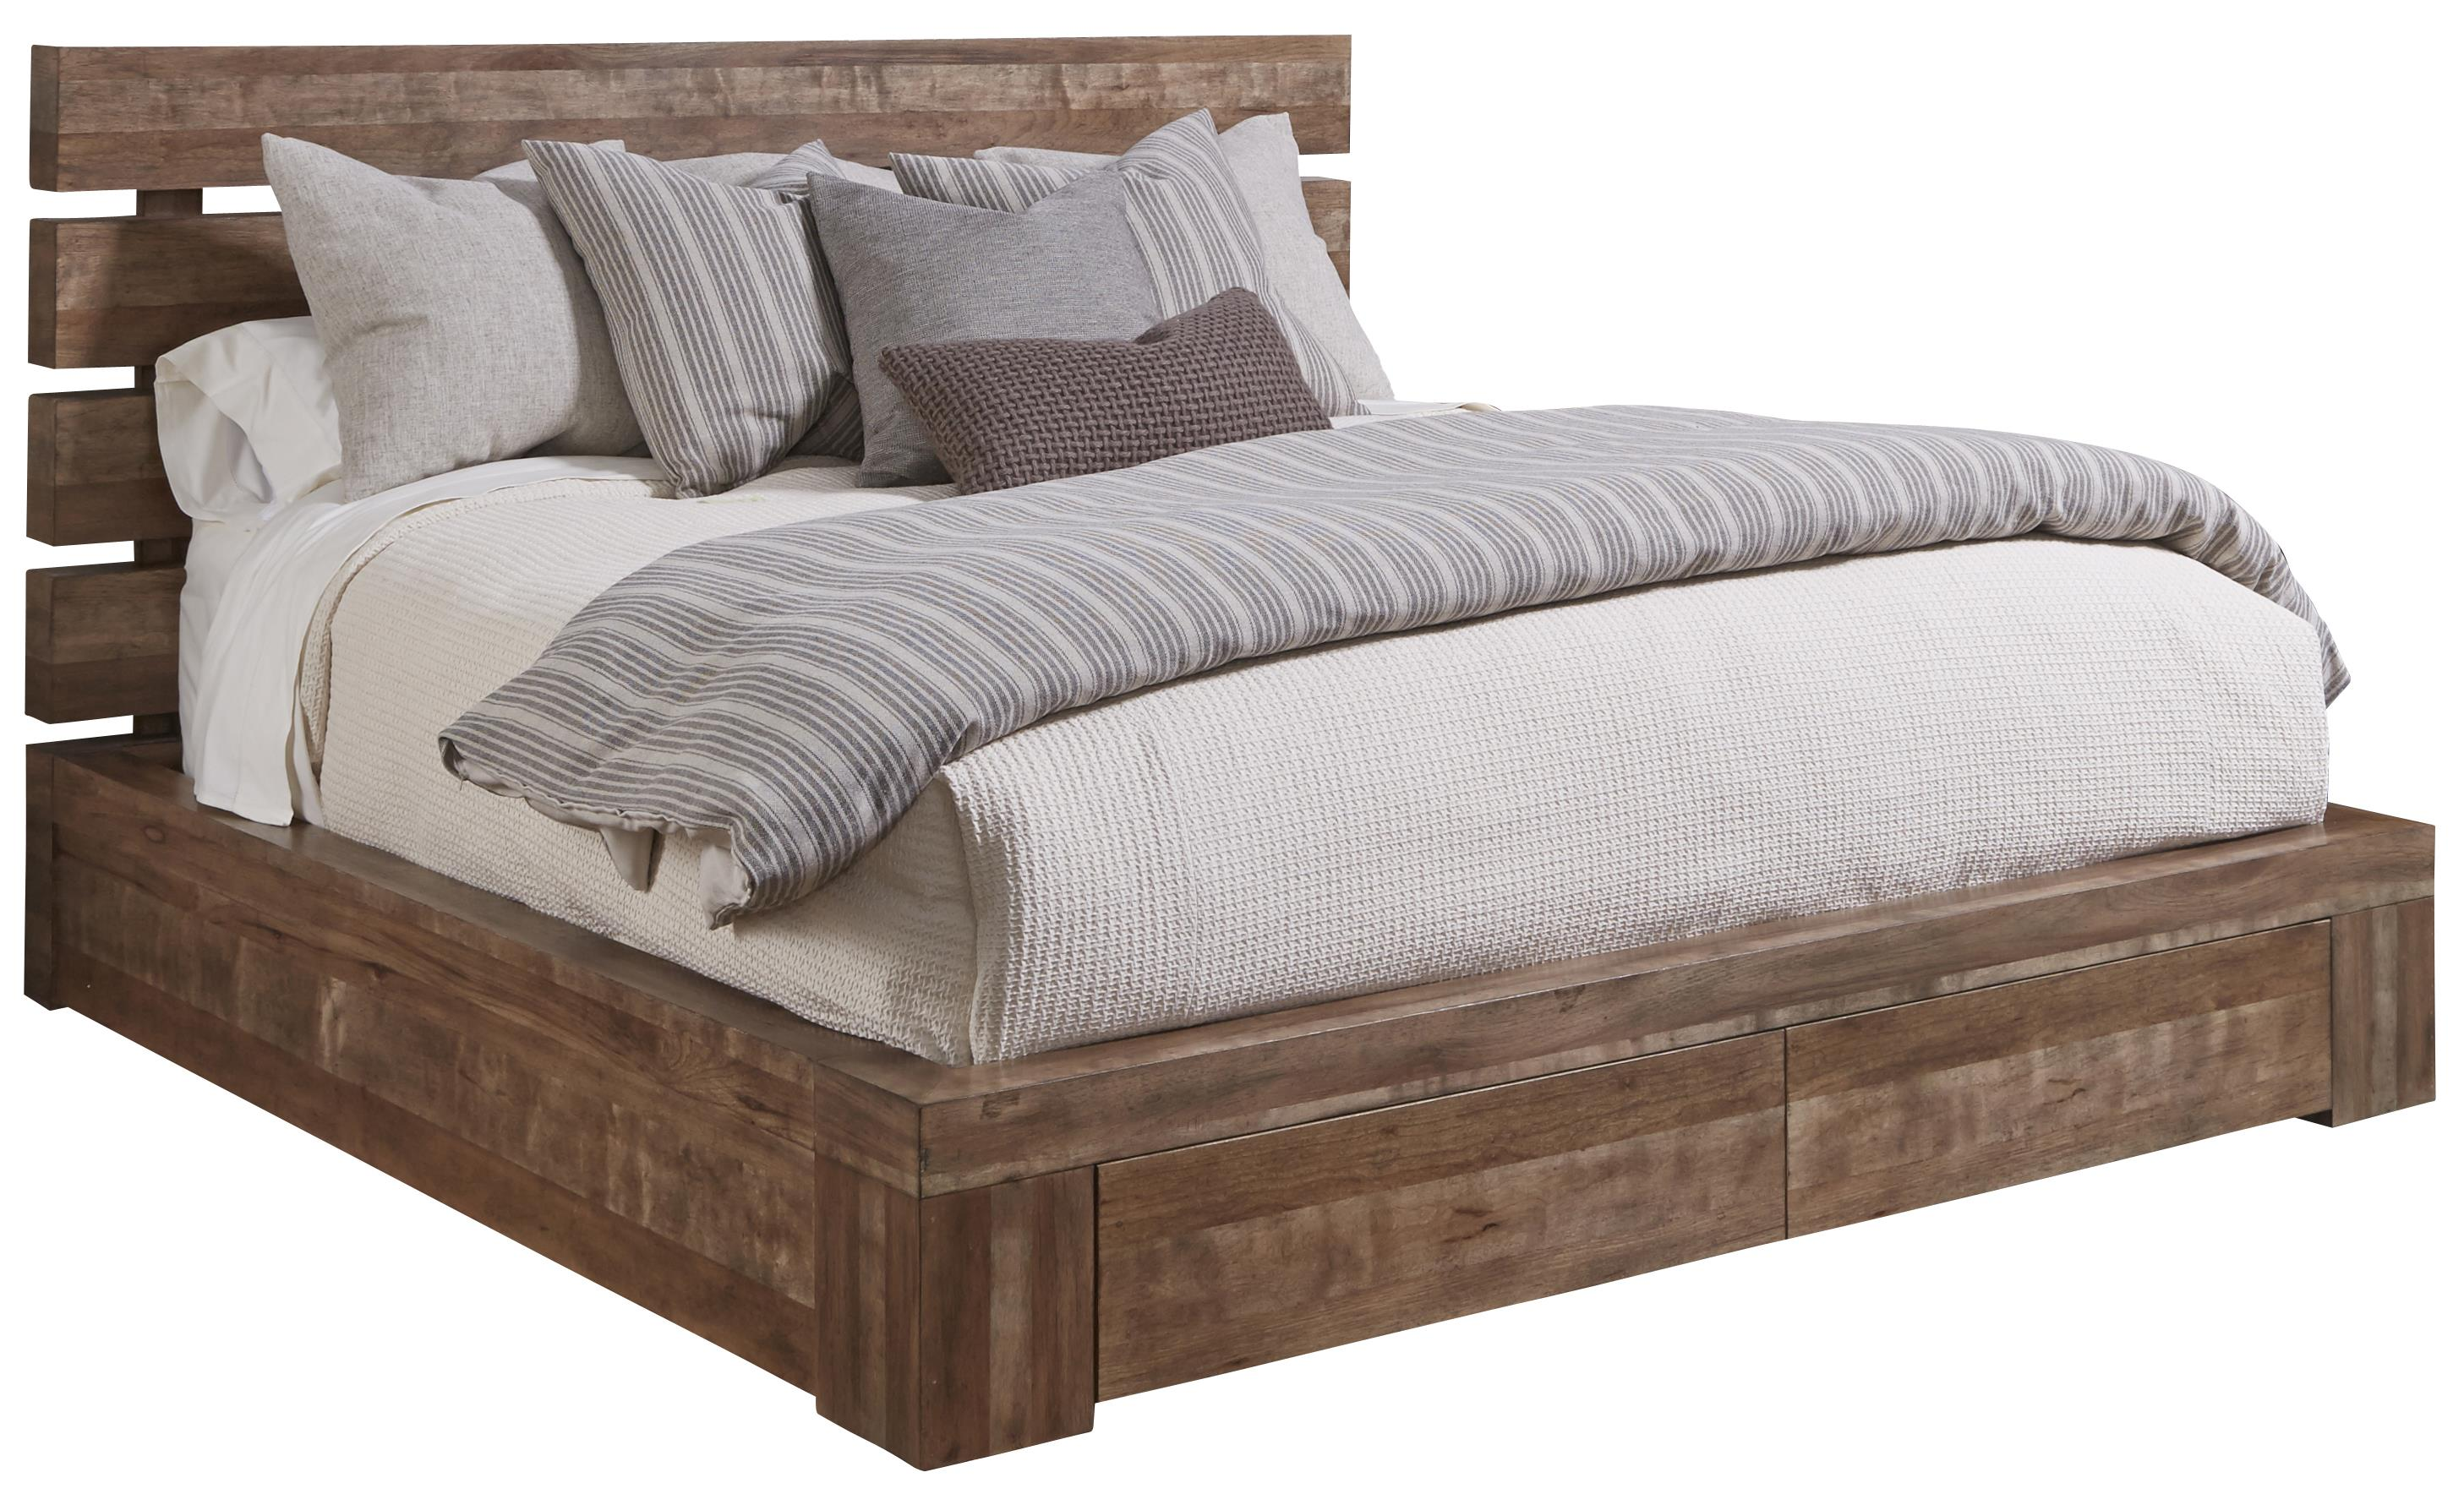 Queen Williamsburg Platform Storage Bed. Queen Williamsburg Platform Storage Bed by A R T  Furniture Inc